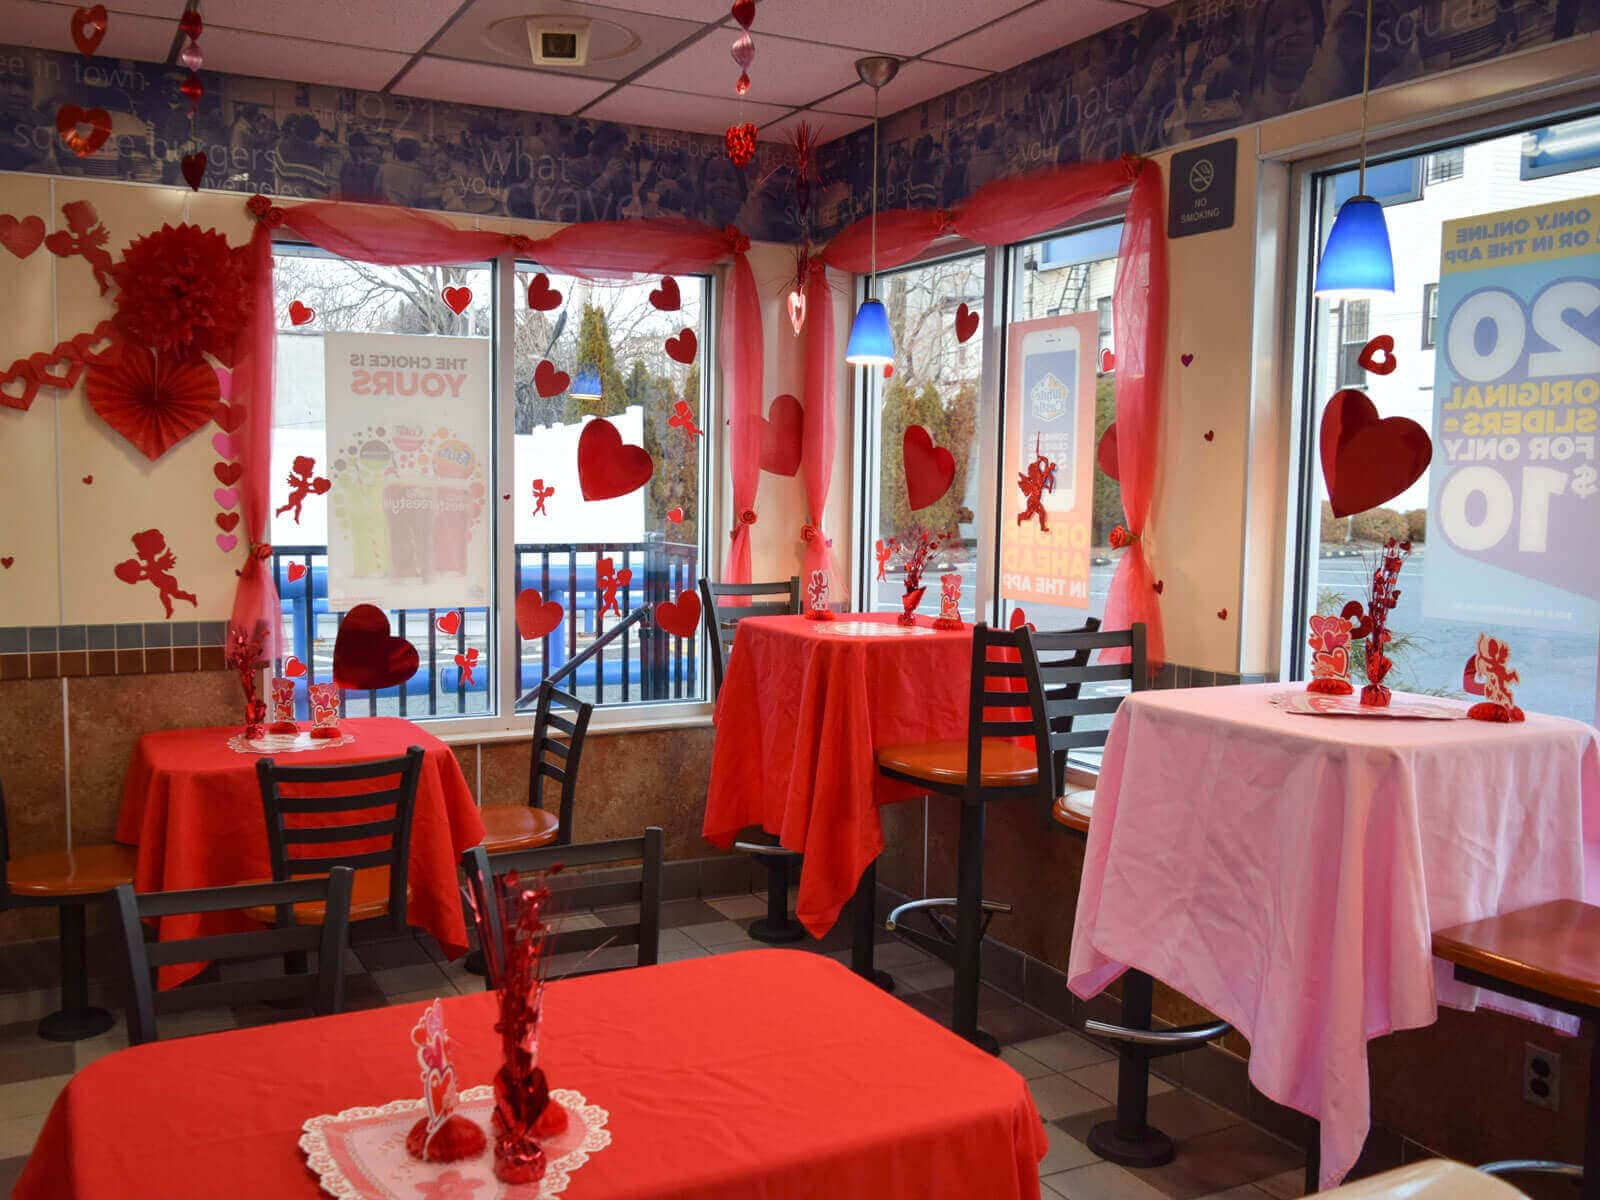 Valentine Decoration Ideas For The Restaurant Styleheap Com,Master Bedroom French Country Bedroom Furniture